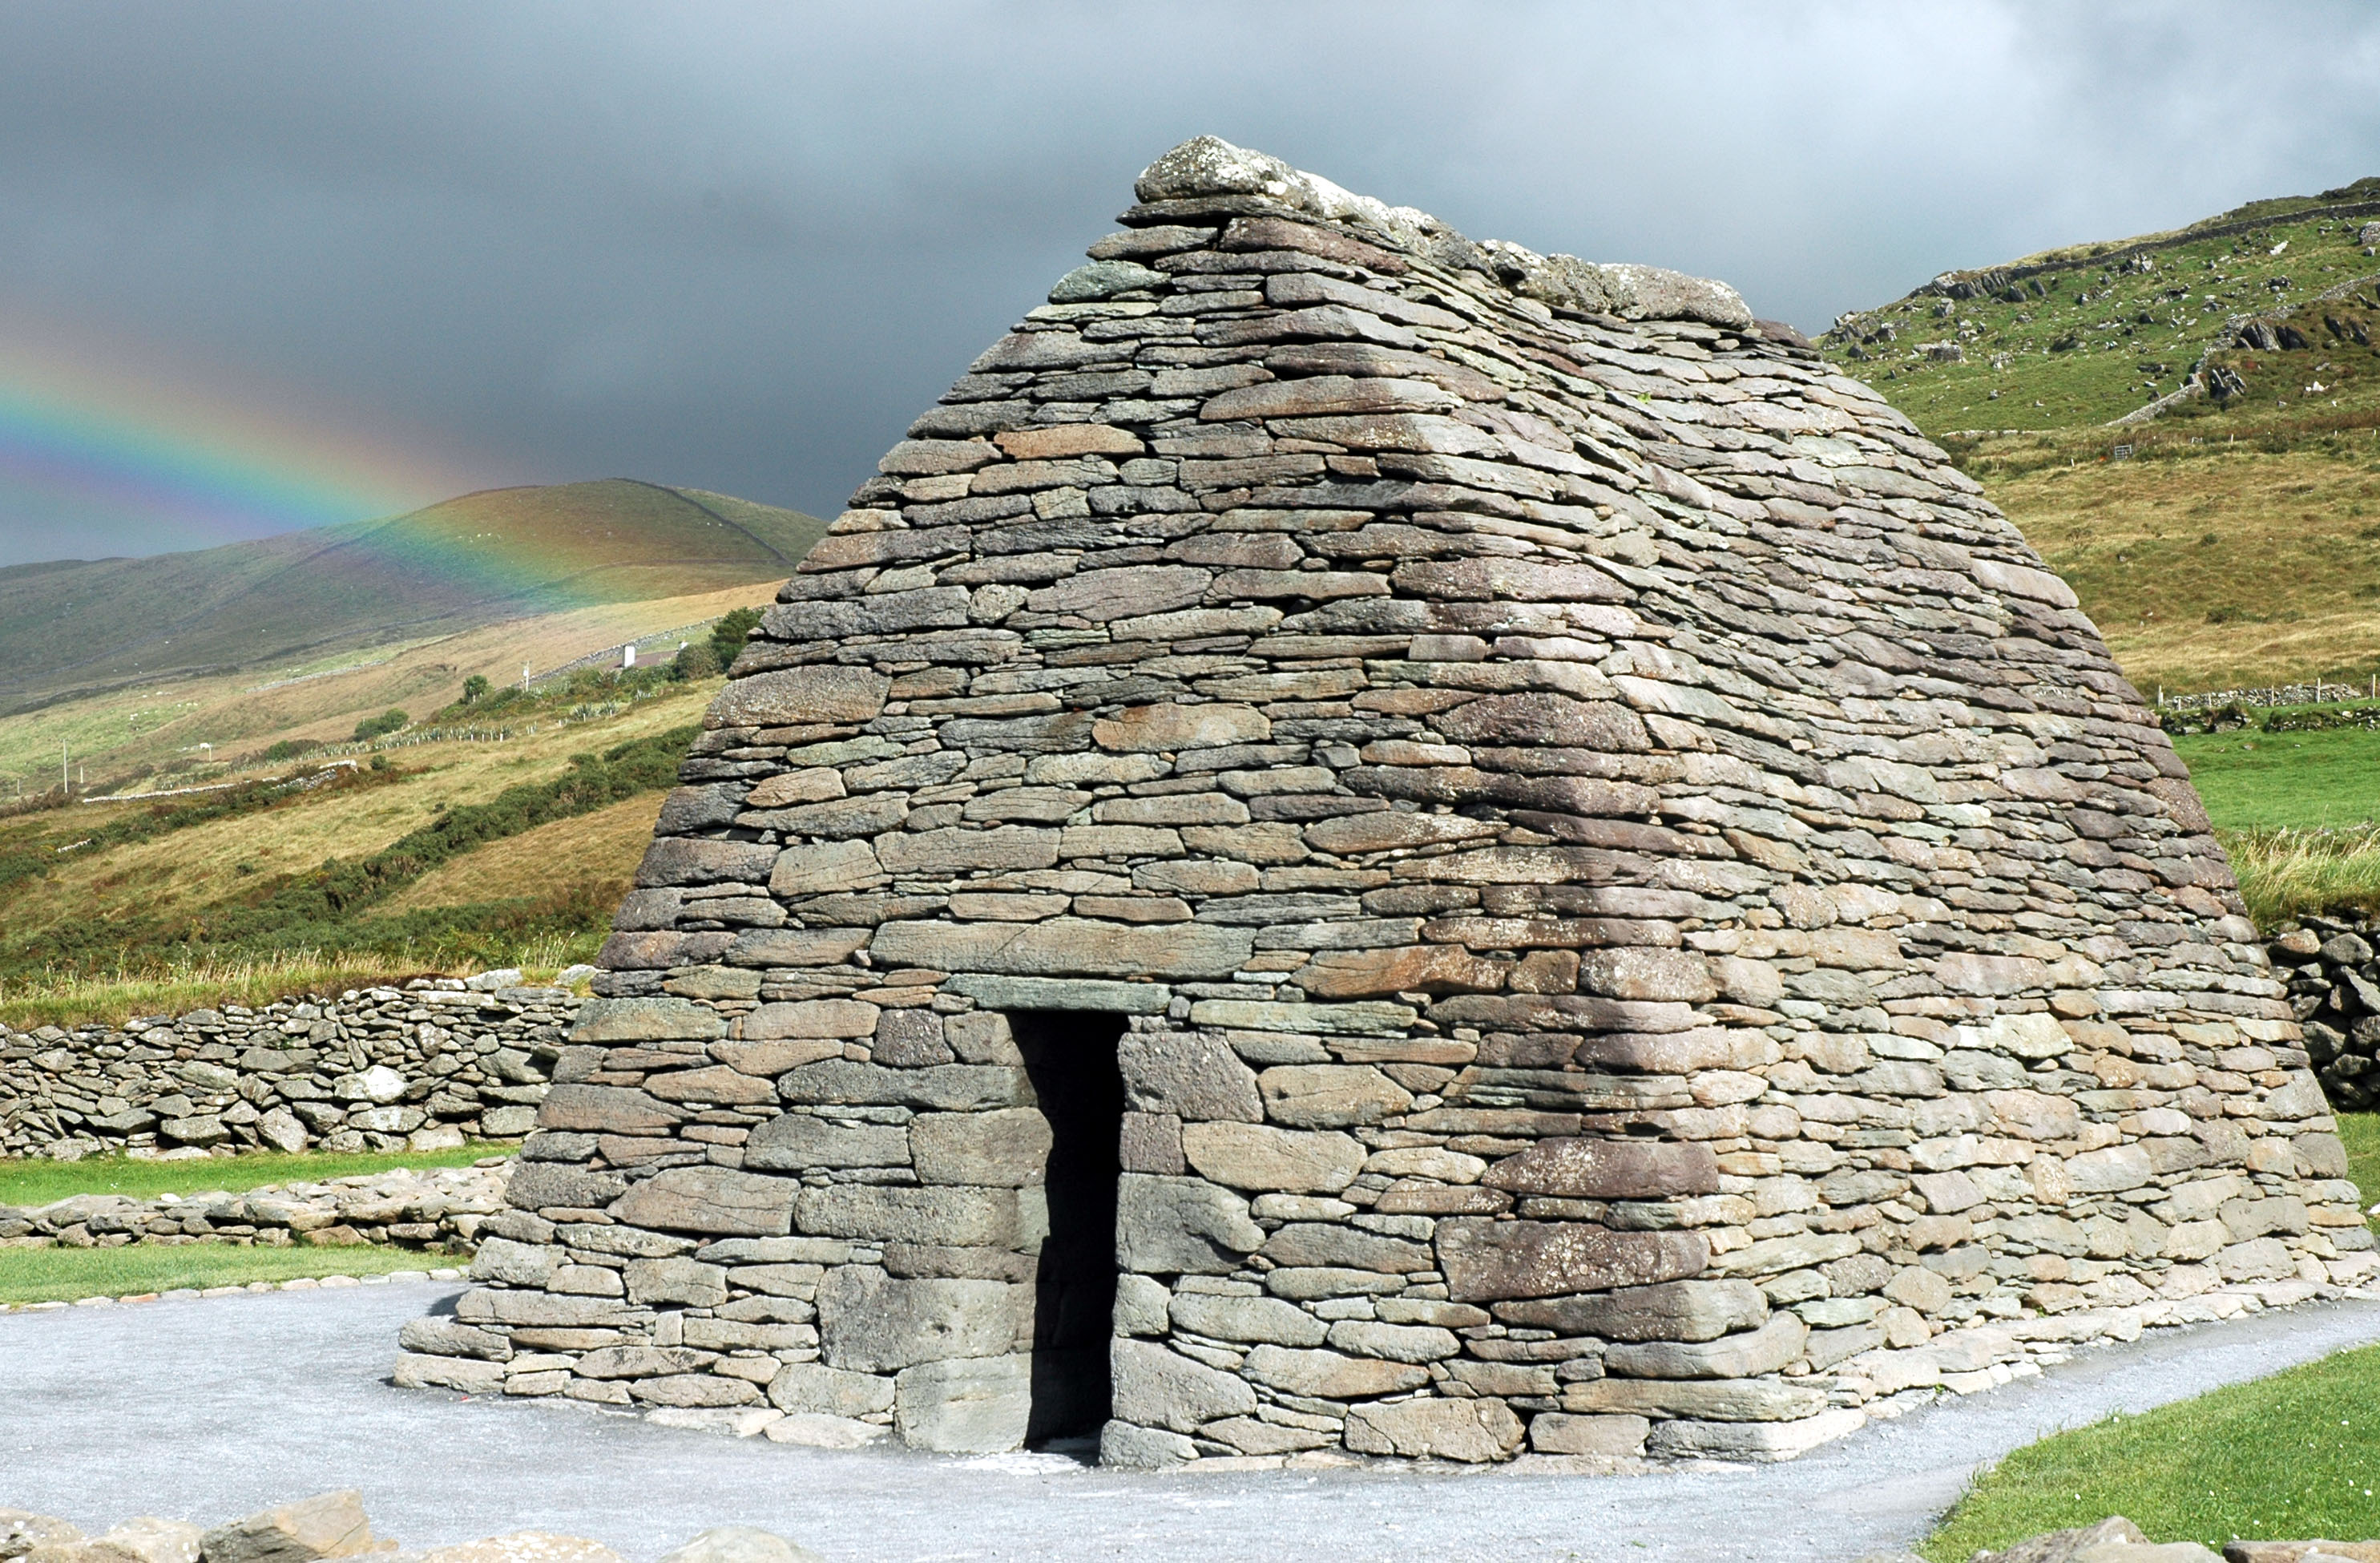 FileGallarus Oratory Rainbow Jpg Wikimedia Commons - Irish landmarks